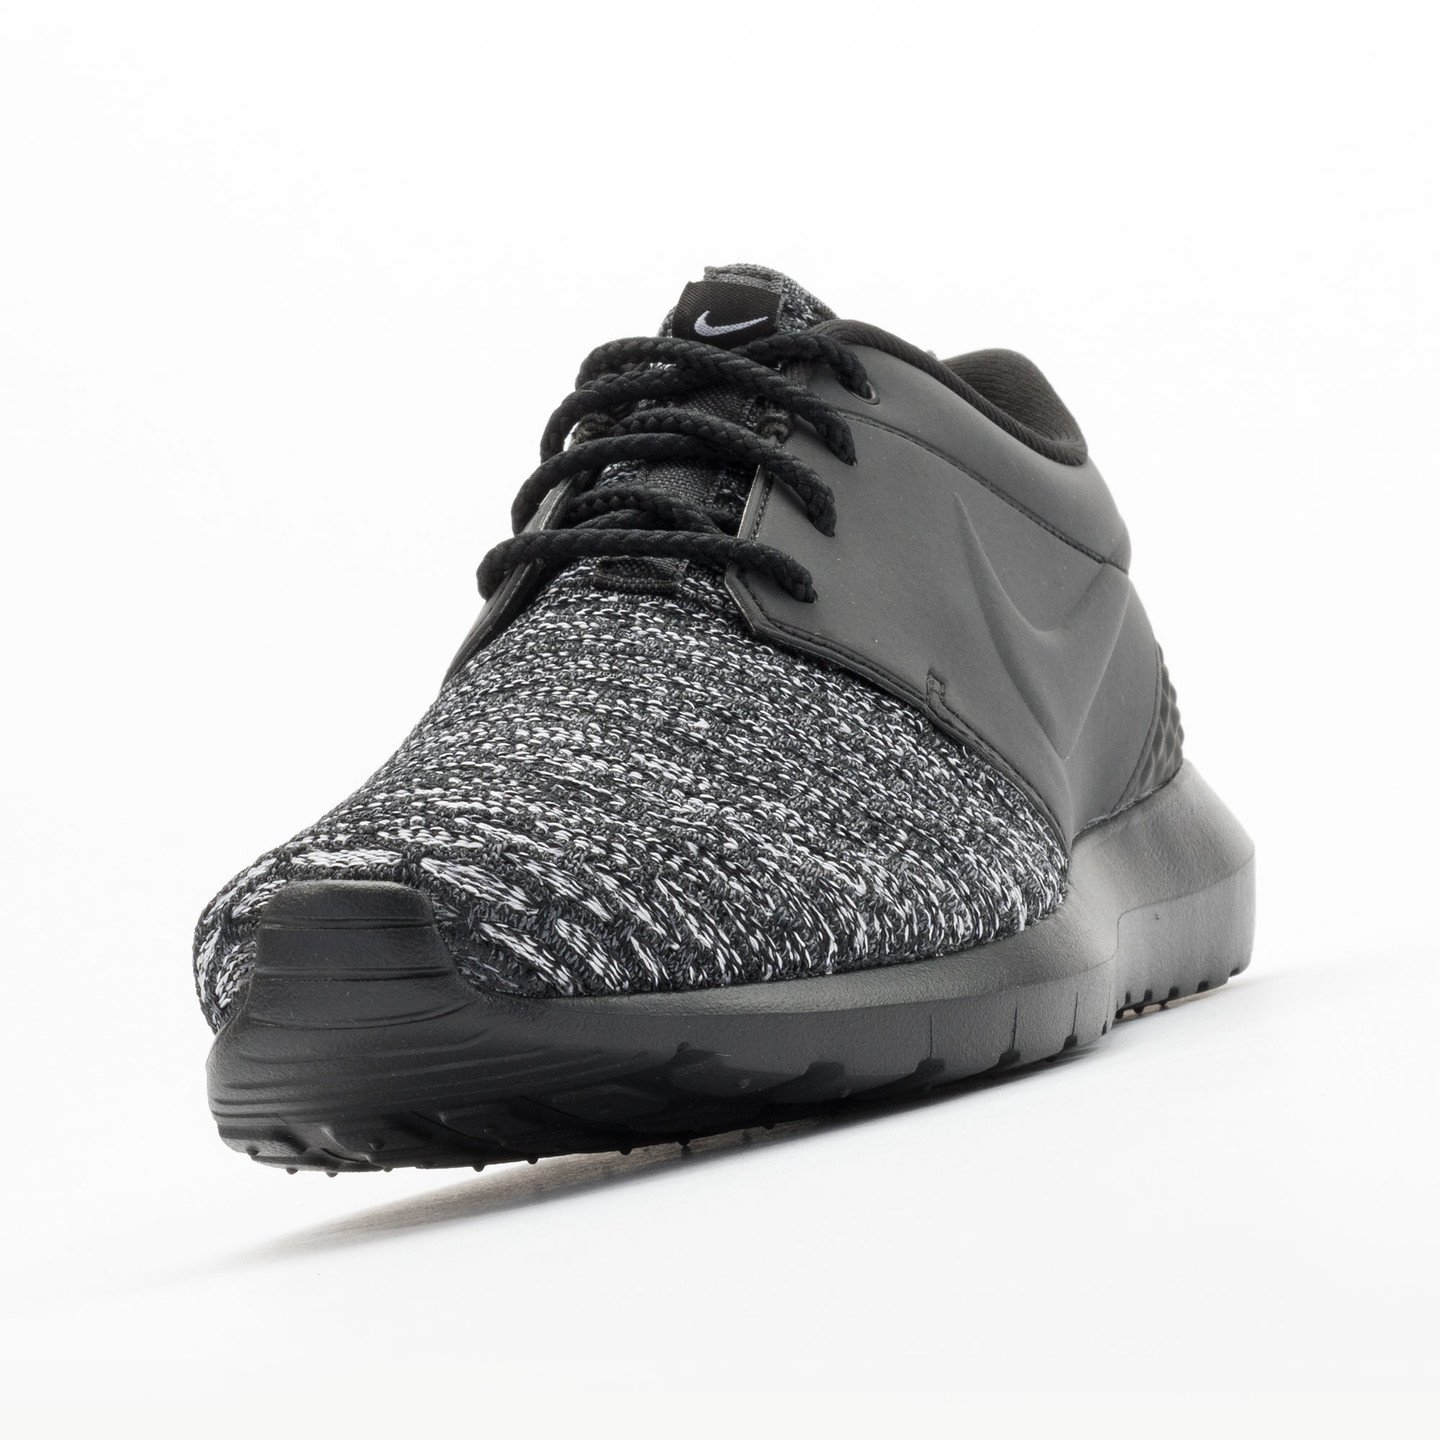 Nike Roshe NM Flyknit Premium Black / Black / Dark Grey / White 746825-002-46